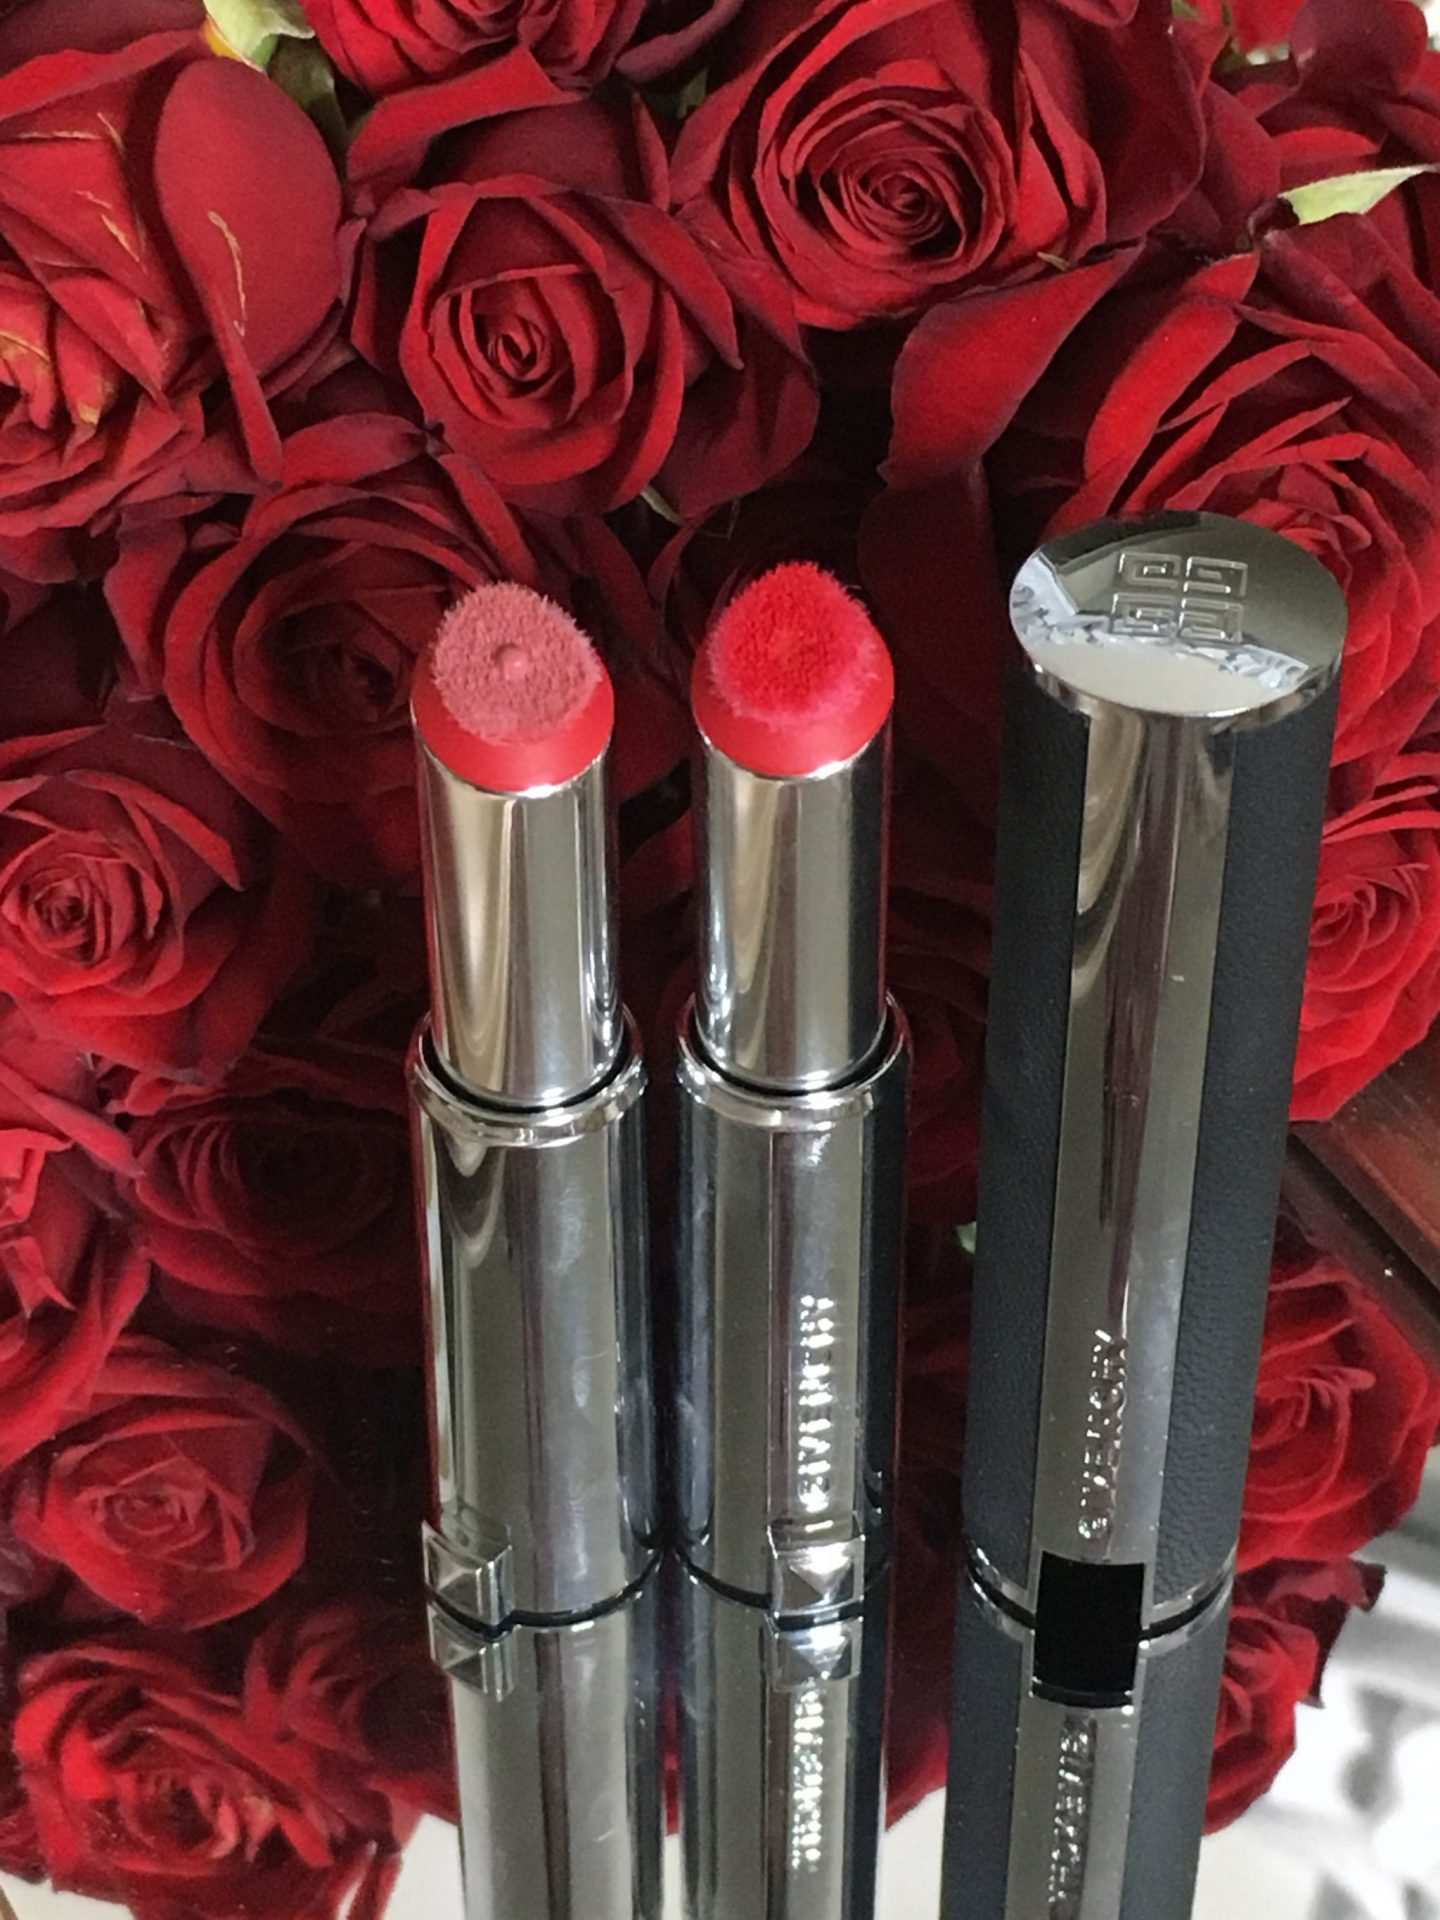 Givenchy Le Rouge Liquide Lipstick review and swatches www.calibeaute.com